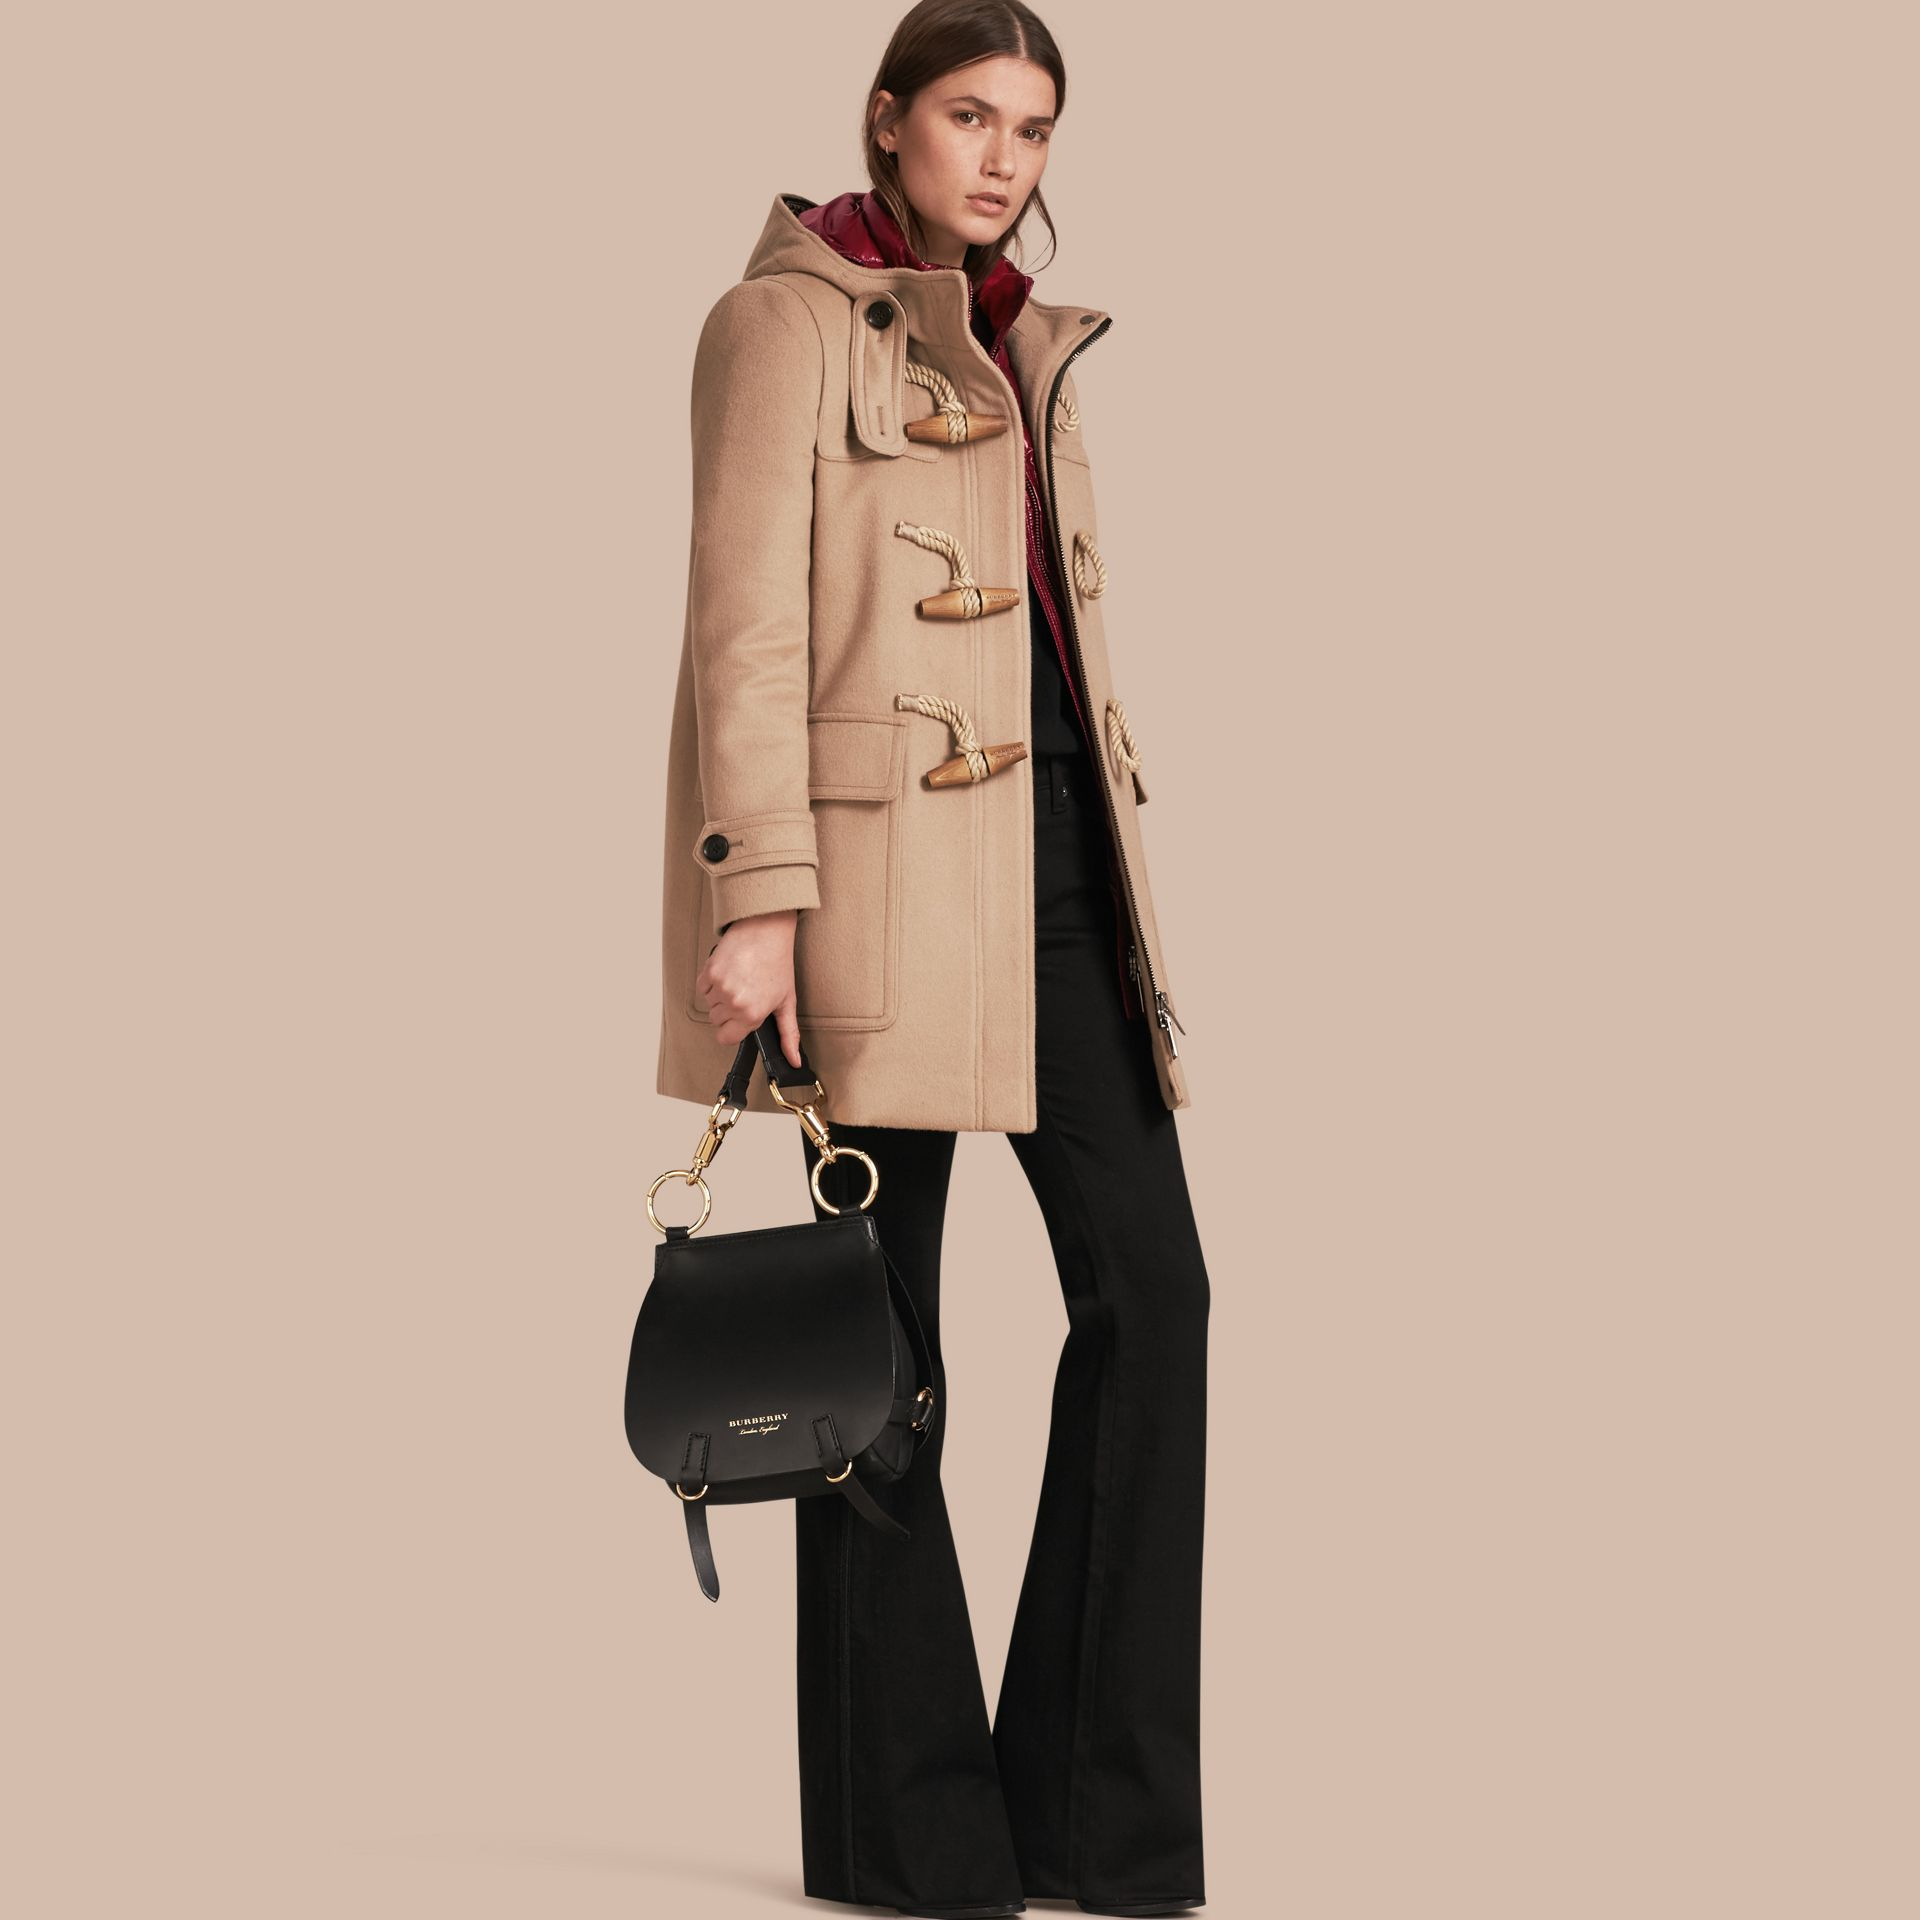 Camel Wool Duffle Coat with Detachable Hooded Down-filled Warmer Camel - ギャラリーイメージ 1